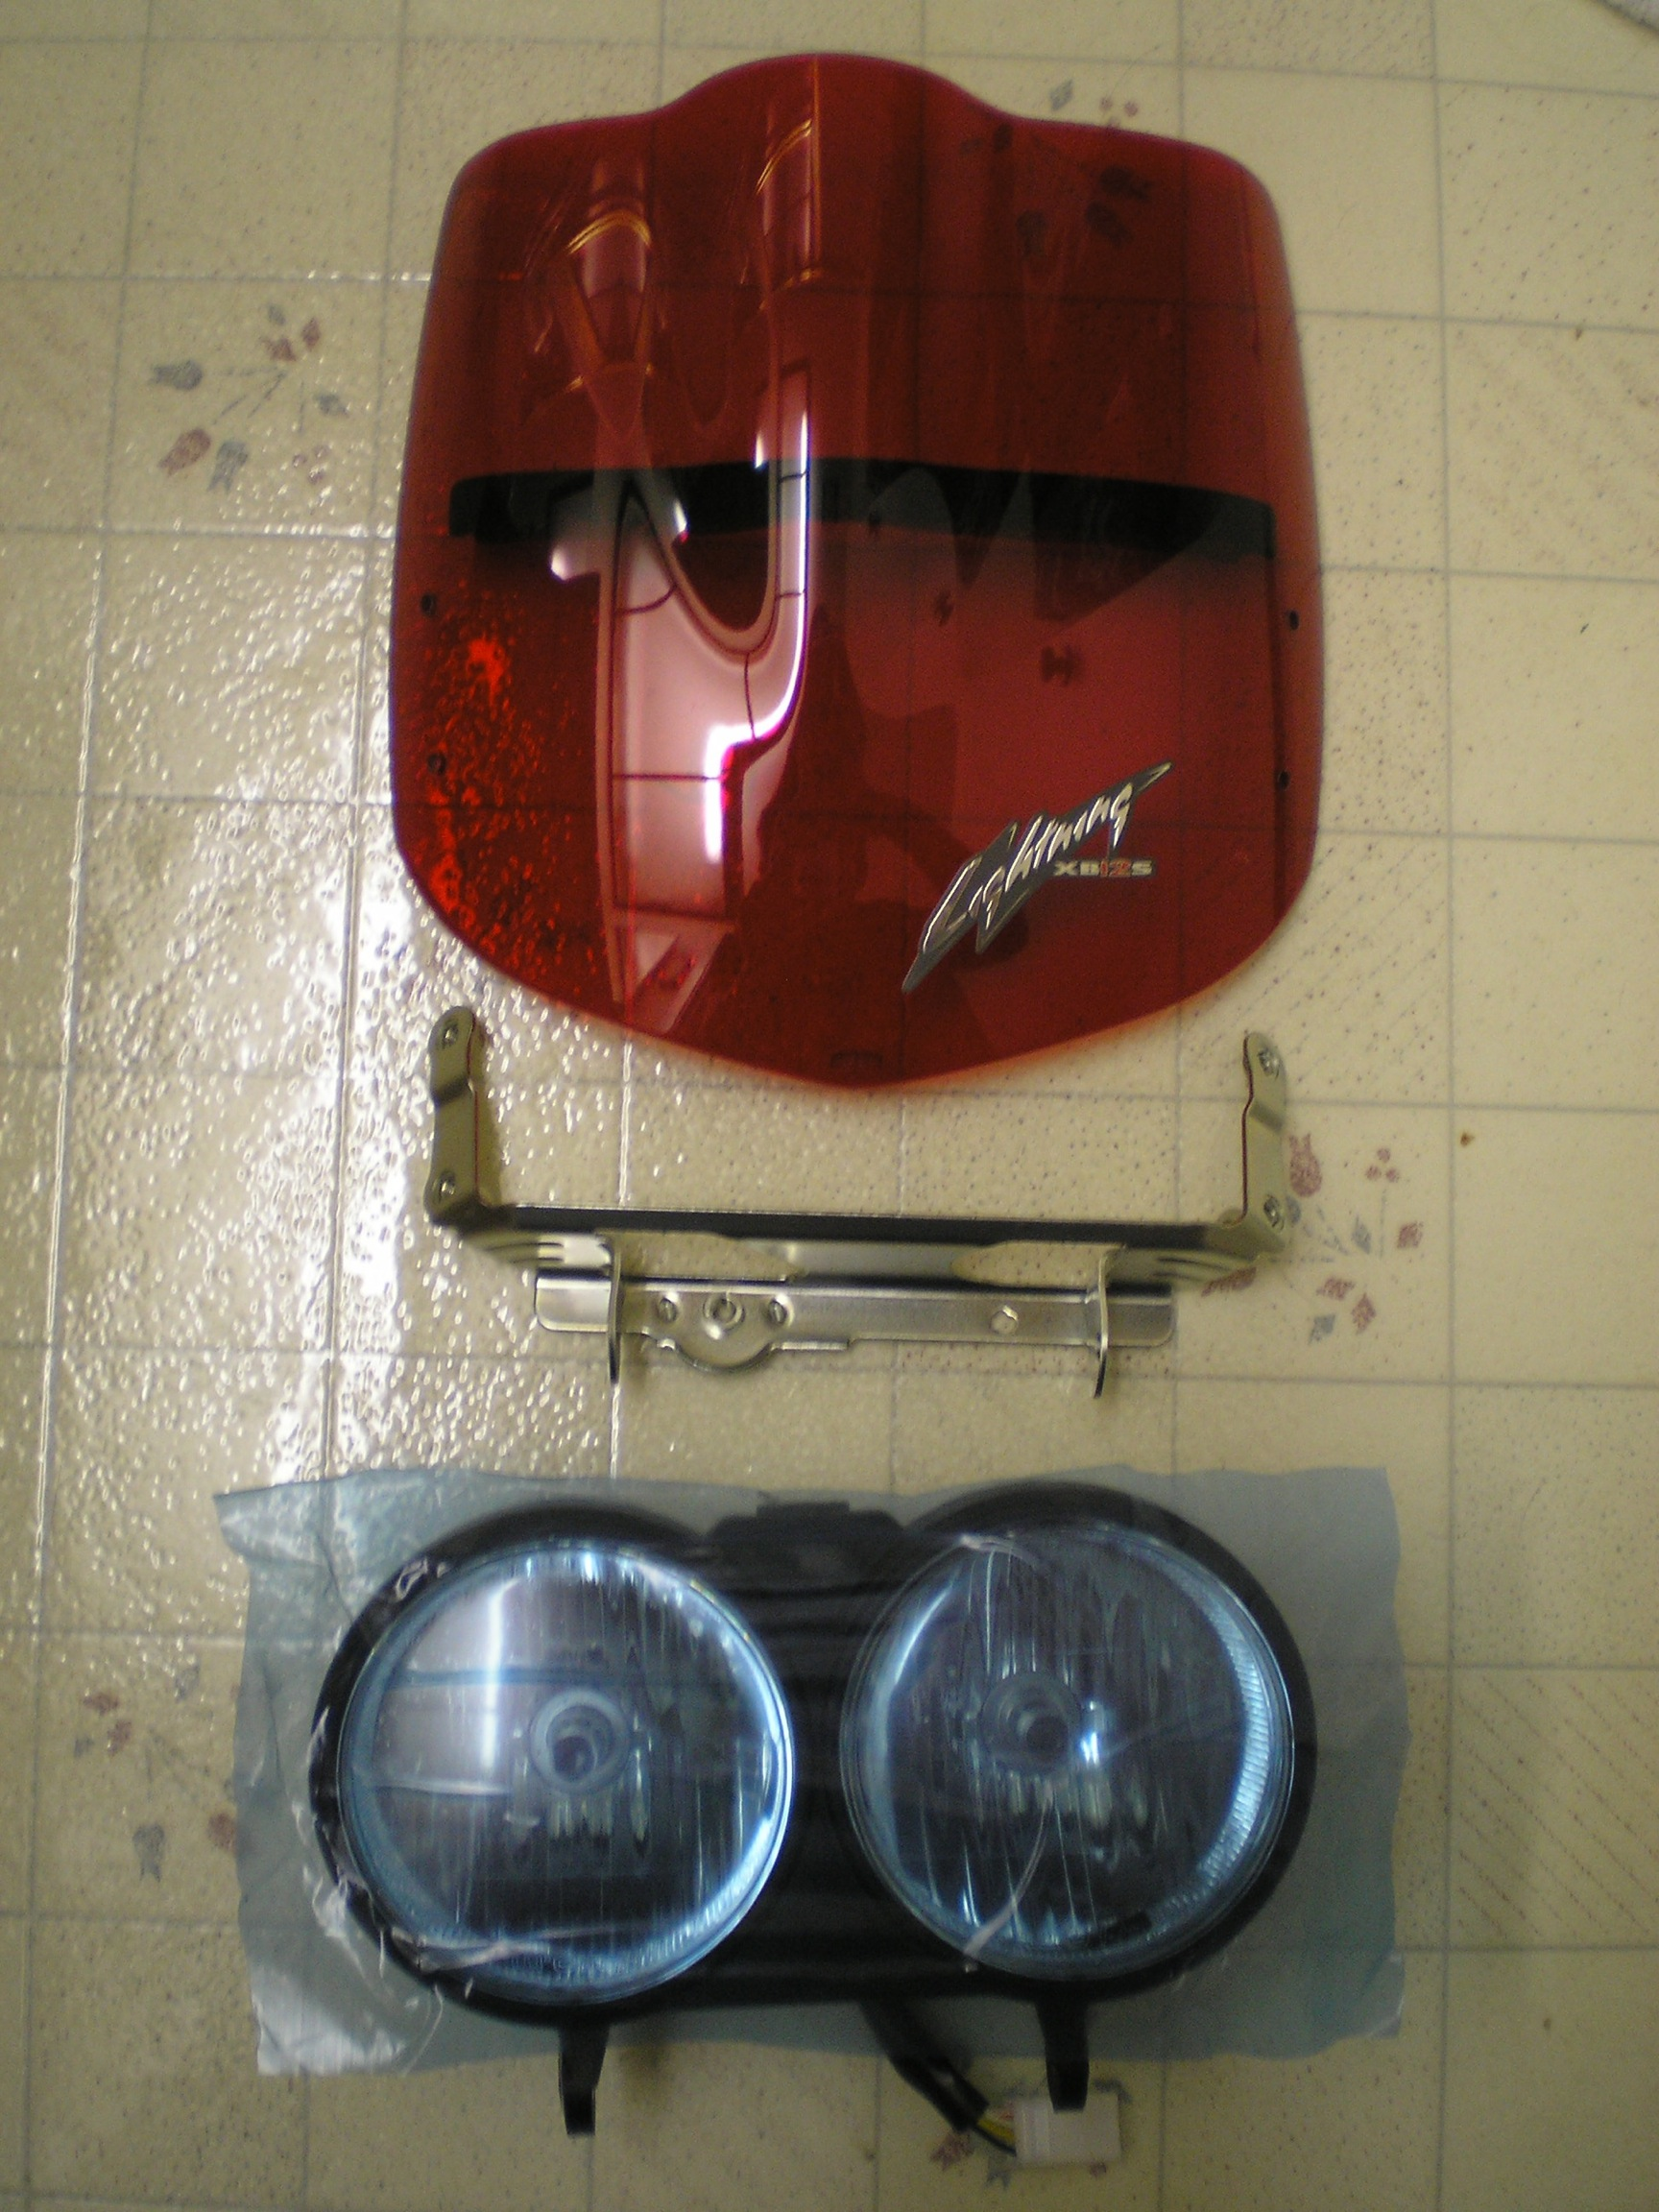 D Buell Headlight Wiring Confusing Me Help Pics P on Old Wiring Colors